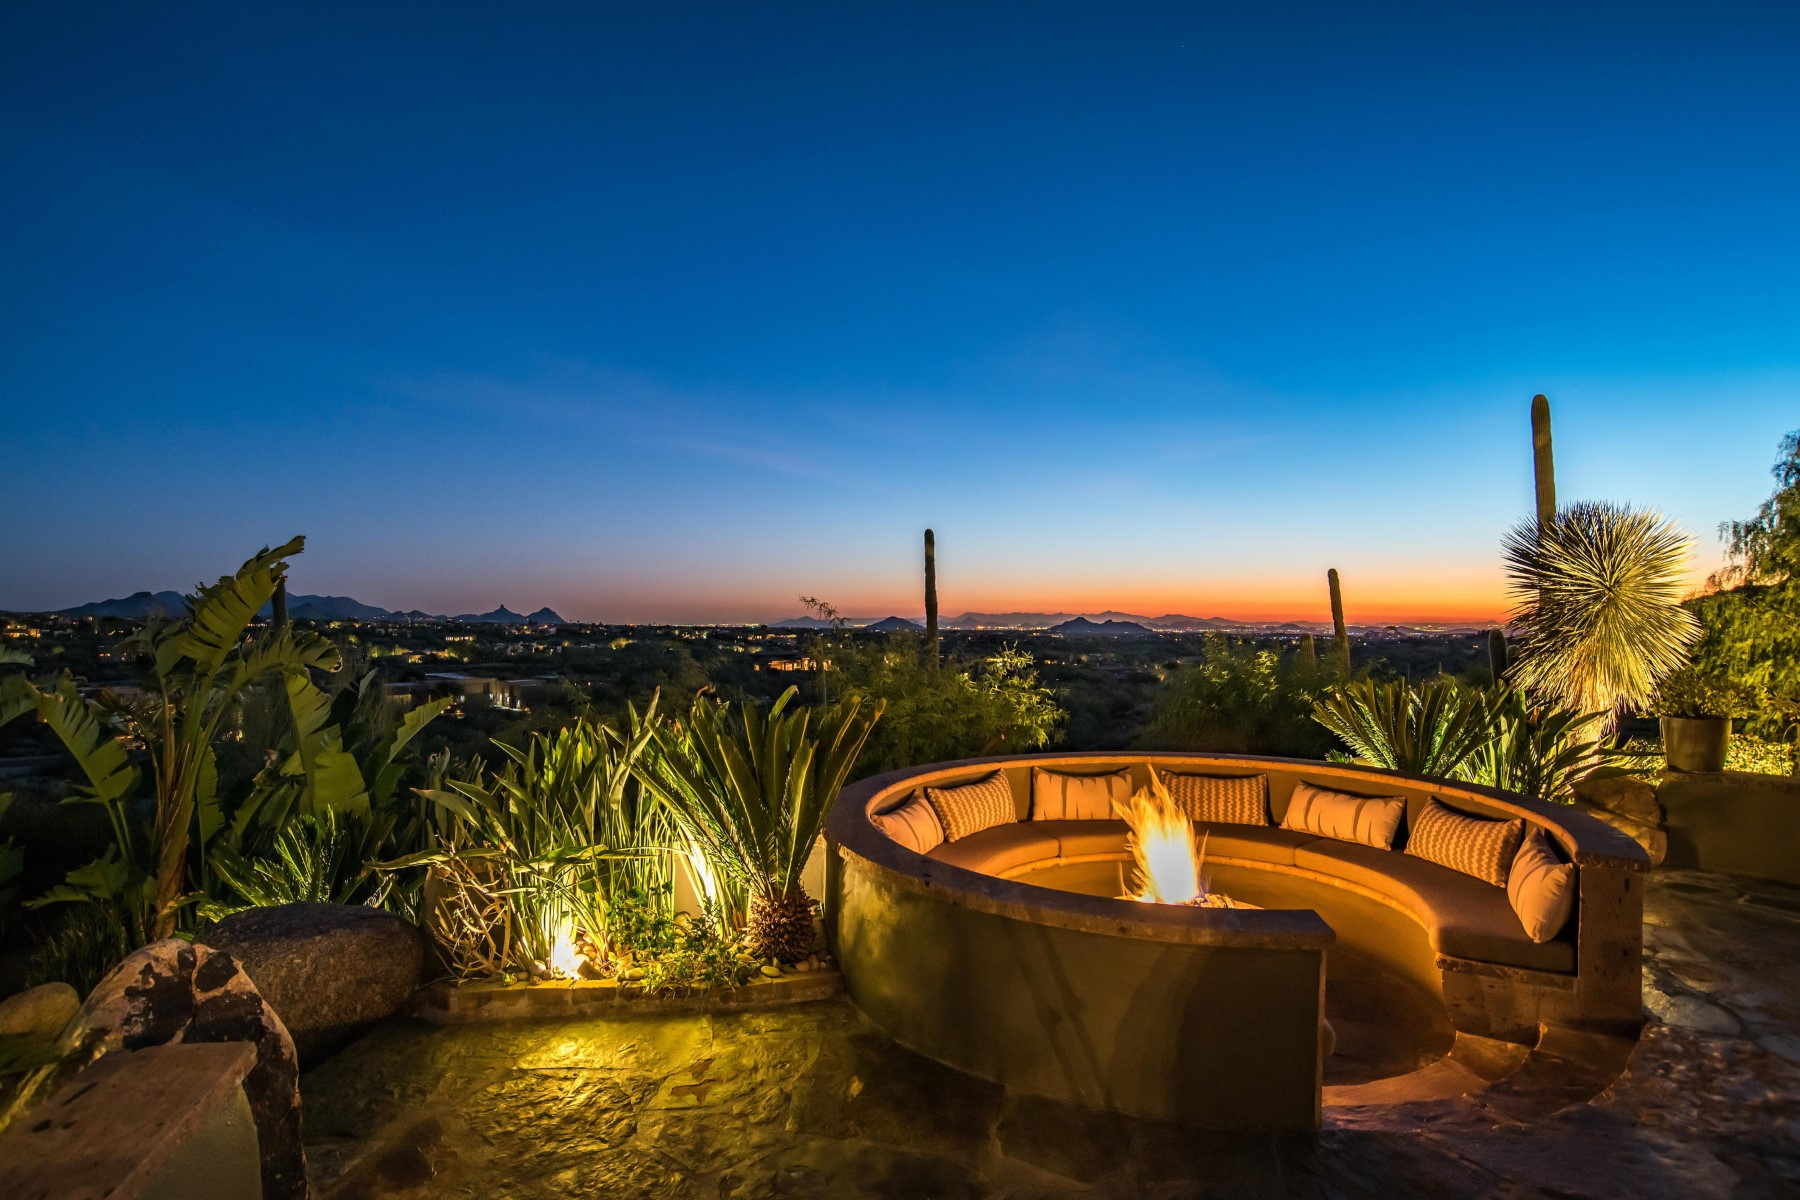 Single Family Home for Sale at 5 Acre Hillside Estate in Carefree Ranch 38819 N Alister McKenzie Dr, Scottsdale, Arizona, 85262 United States